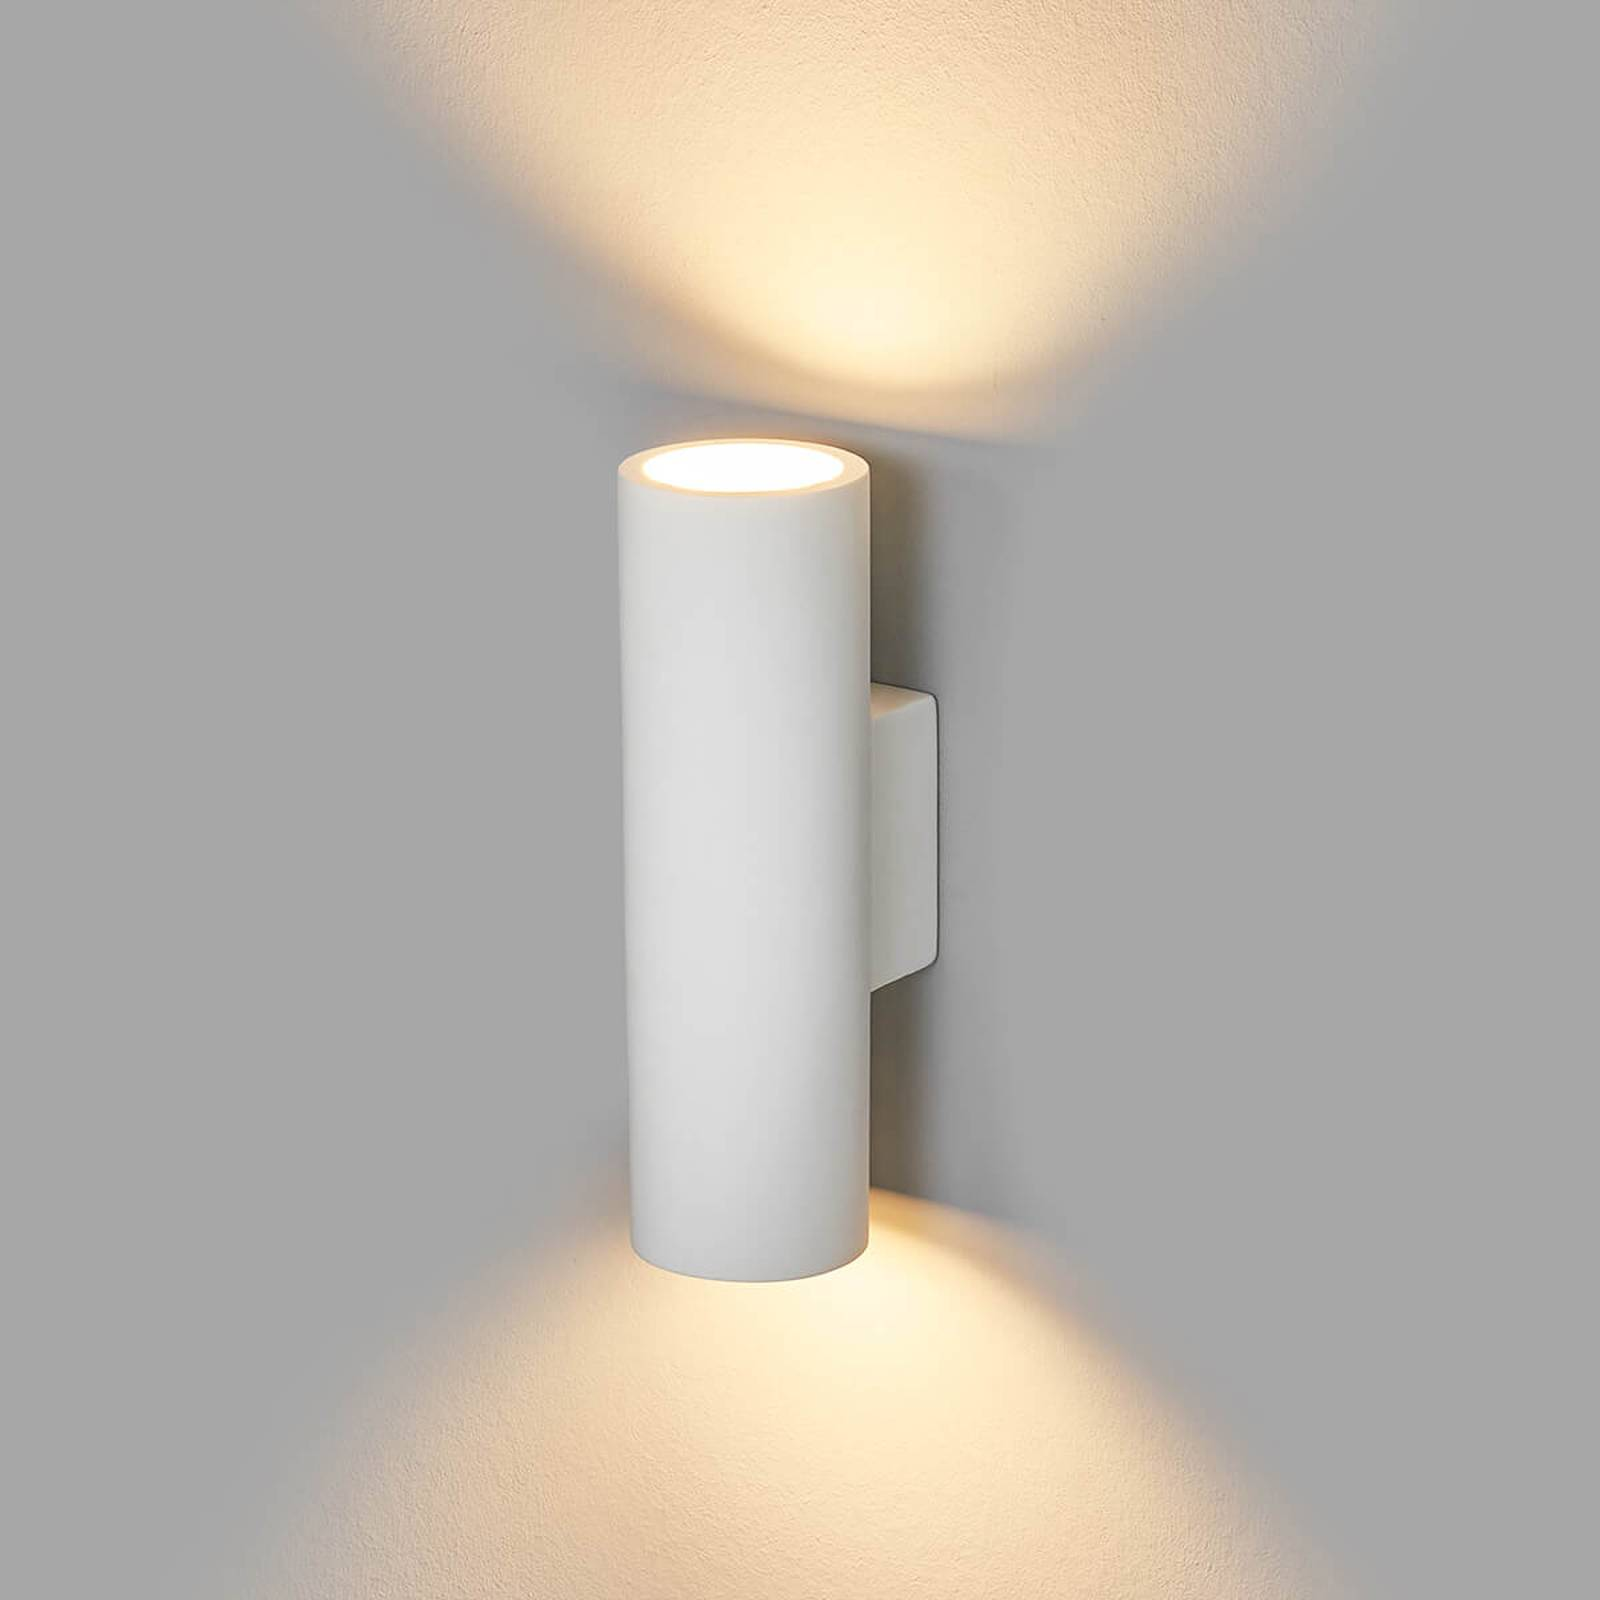 2-bulb plaster wall lamp Norwin from Lindby